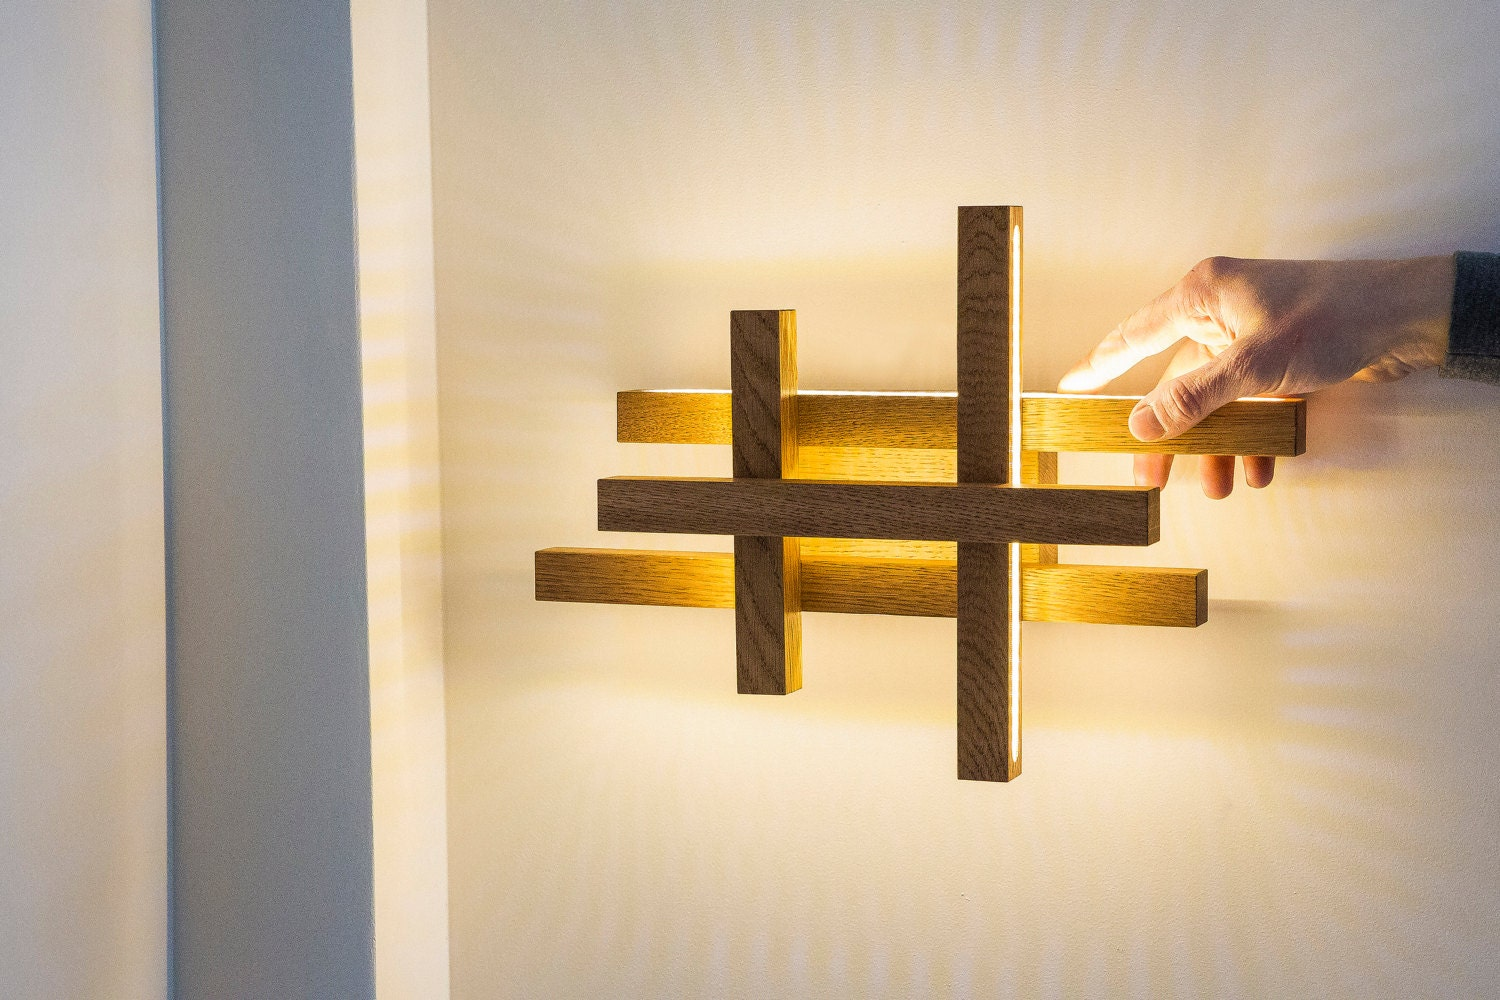 LED wall light -wooden sconce - modern home deco - unique design ...